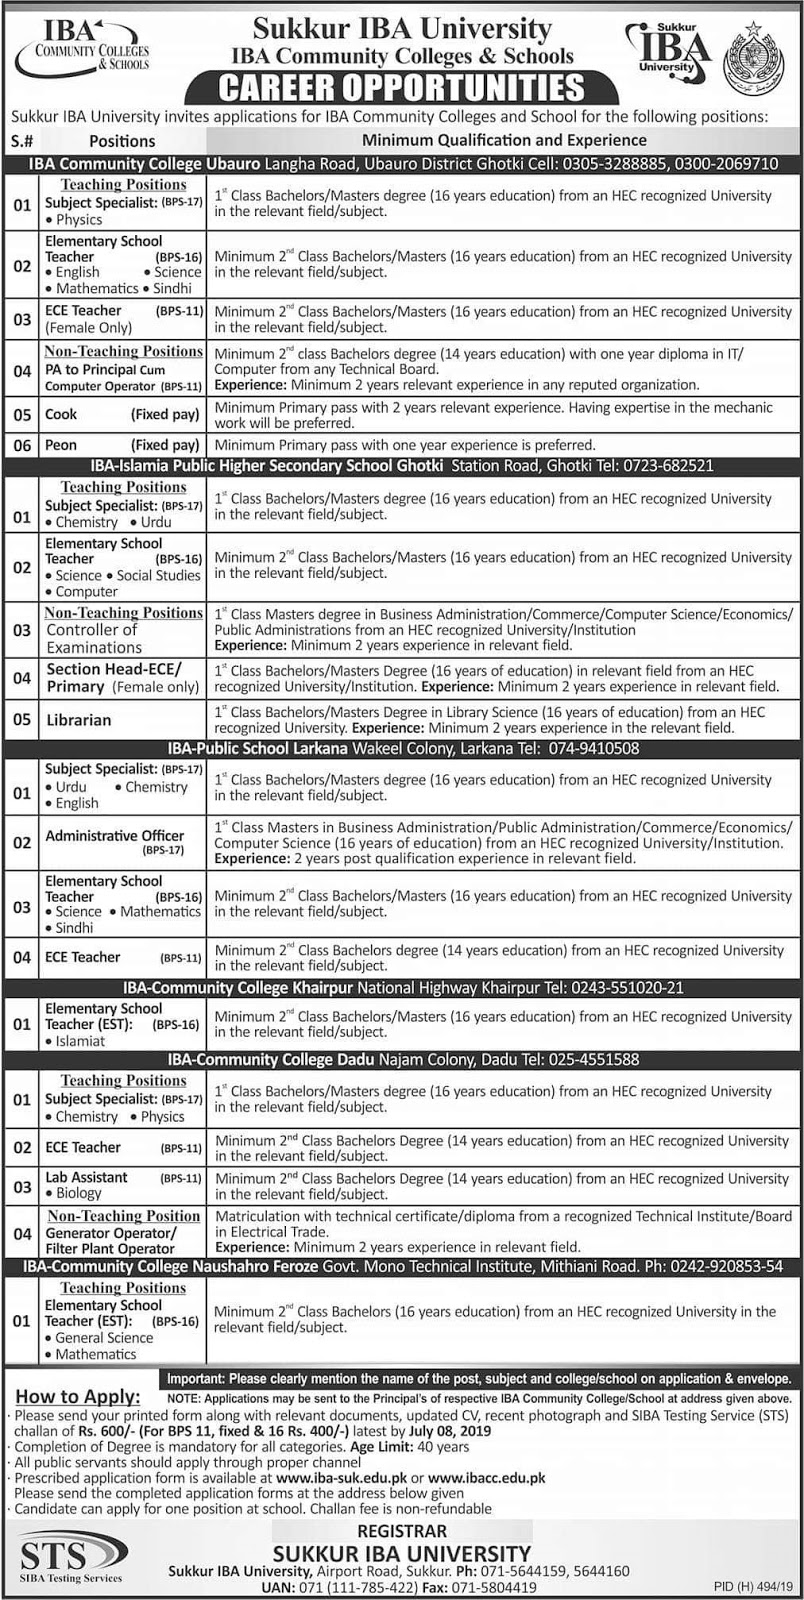 IBA Community Colleges Jobs For Subject Specialist (BPS-17)